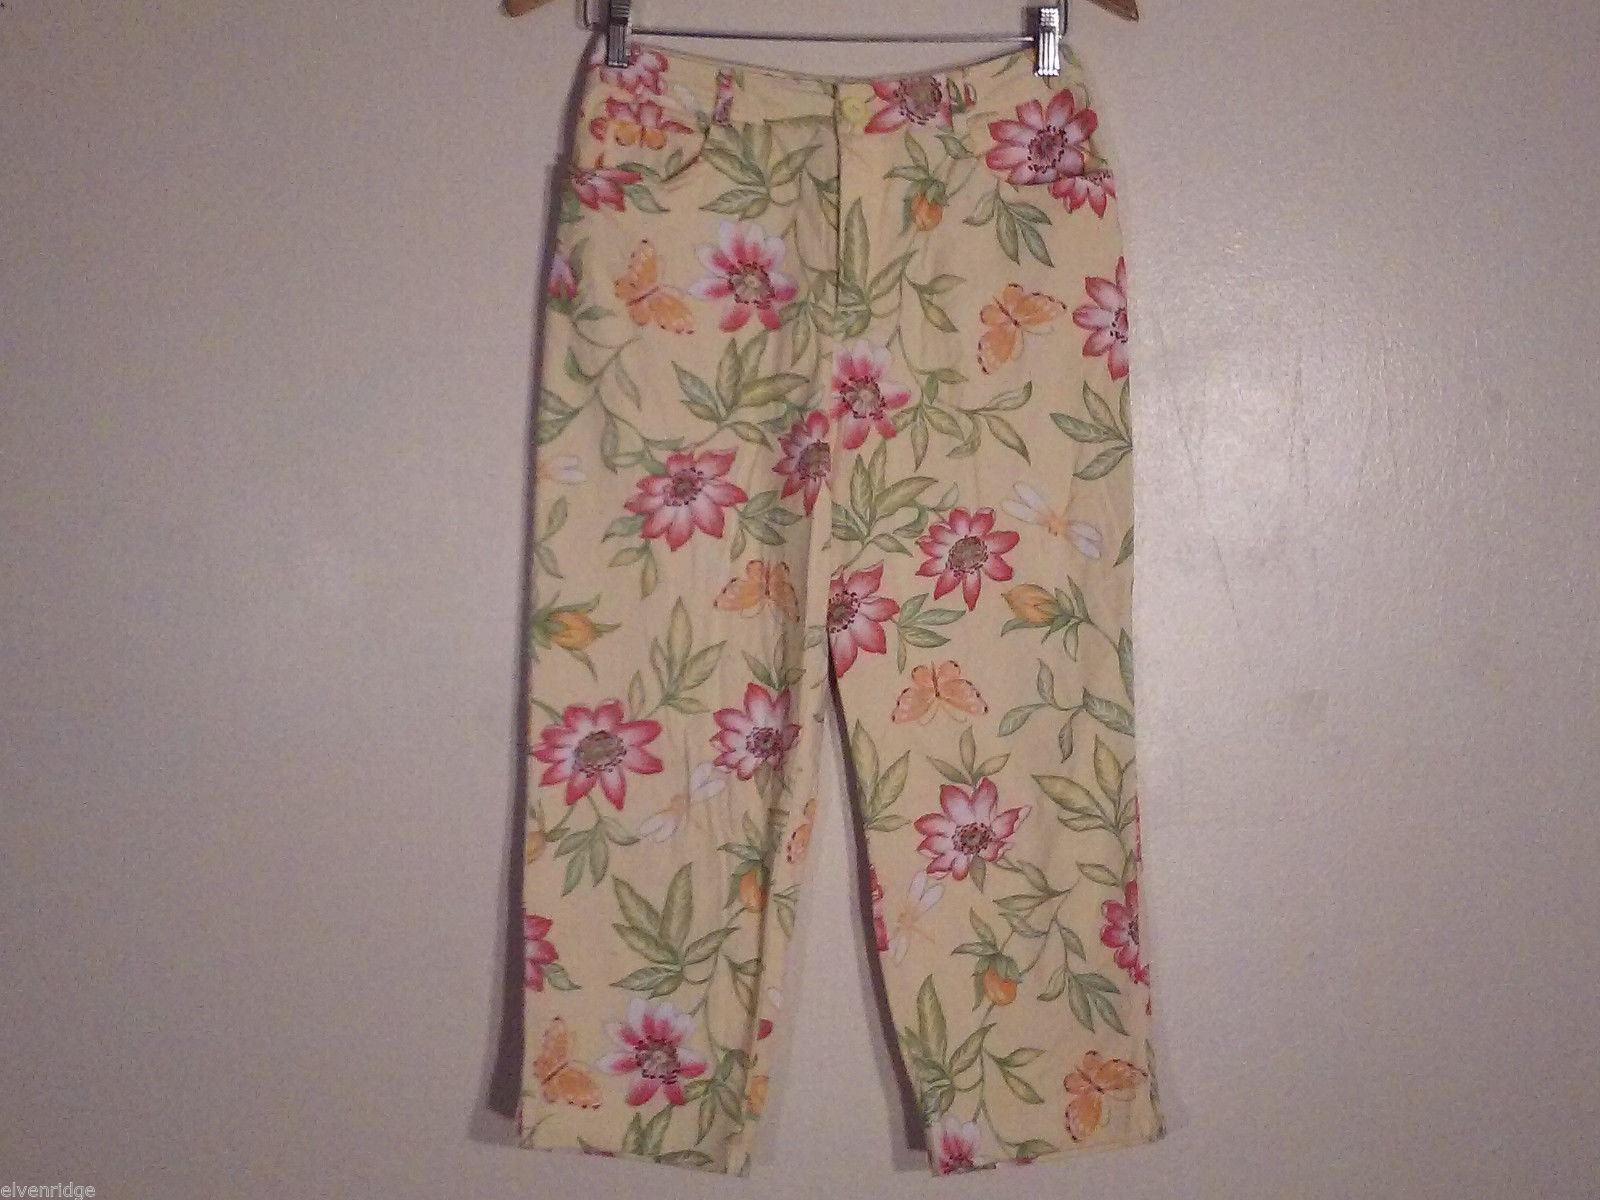 Talbots Women's Size 8 Petite 8P Floral Print Capris Pants in Pink Green Orange